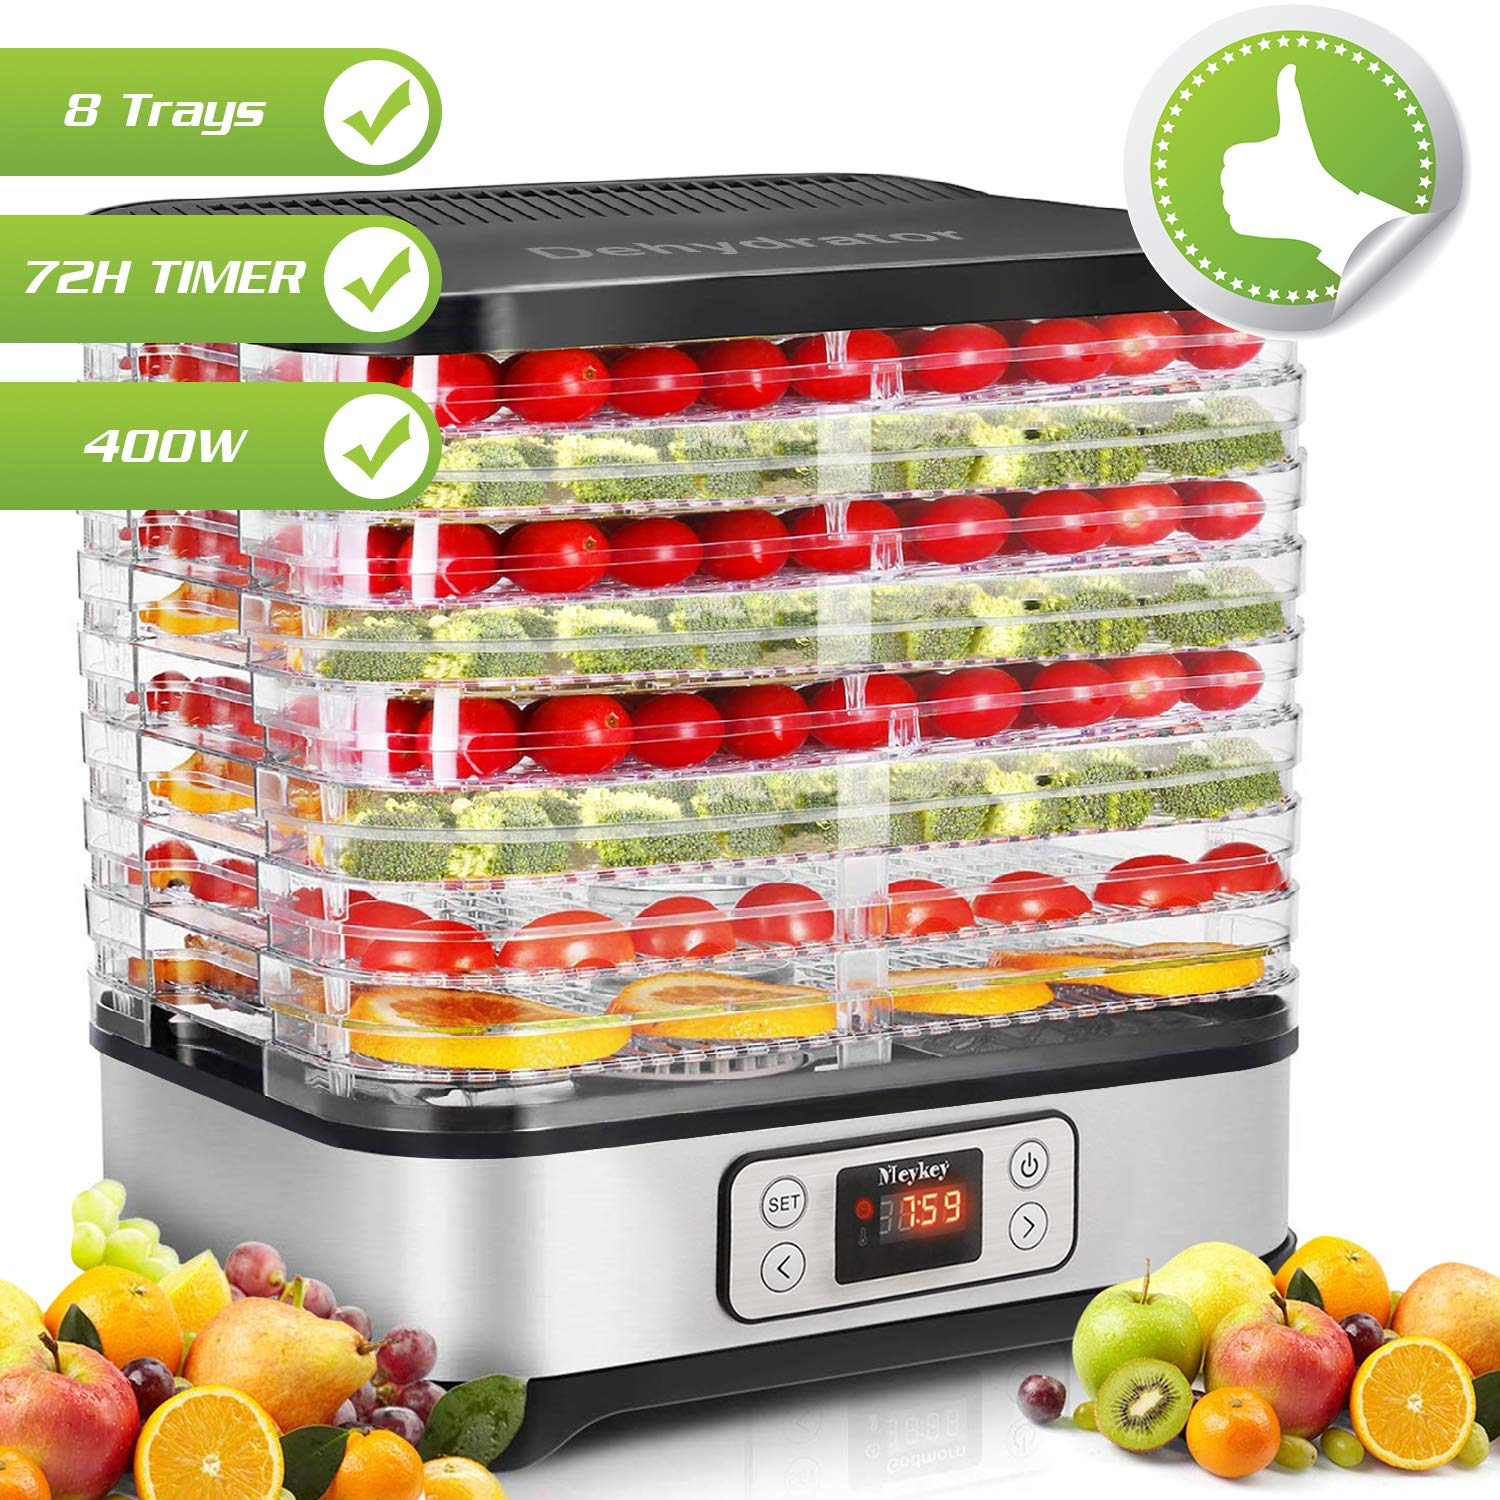 Hauture Food Dehydrator Machine, Fruit Dehydrators with 5-Tray, for Beef Jerky, Herbs, Fruit Leather, Temperature Control, BPA FREE